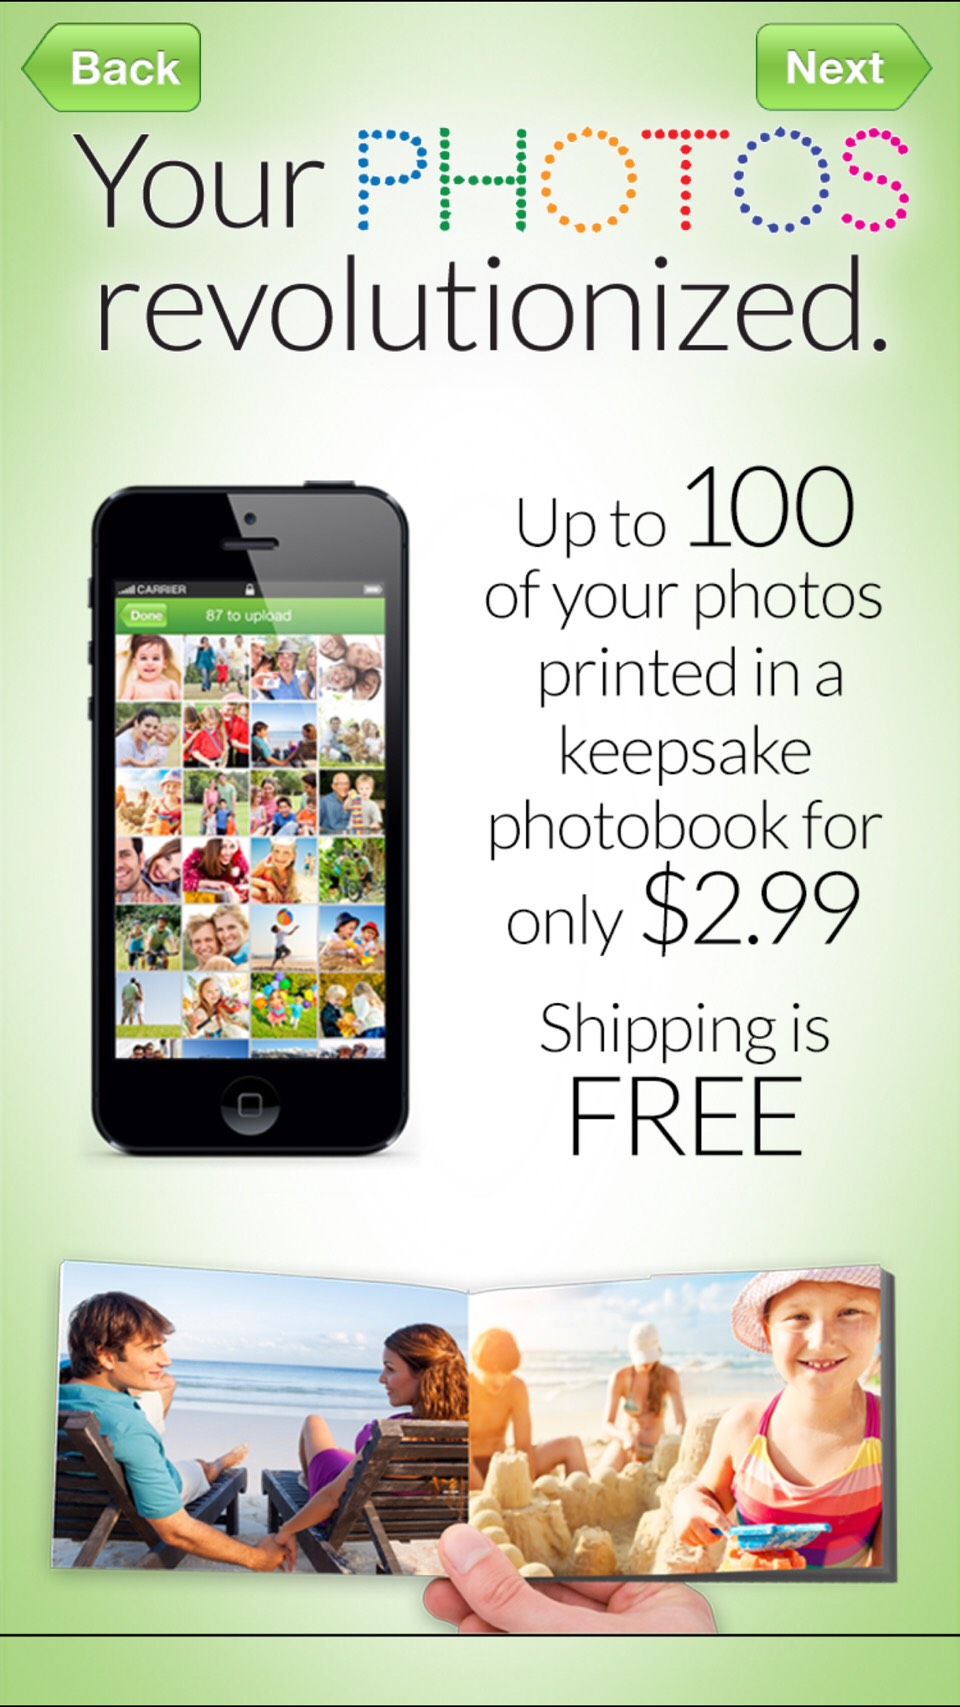 Download groove book to have pictures delivered right to your doorstep. Scroll through slides for more information. Use code Elvis to get first month free!!